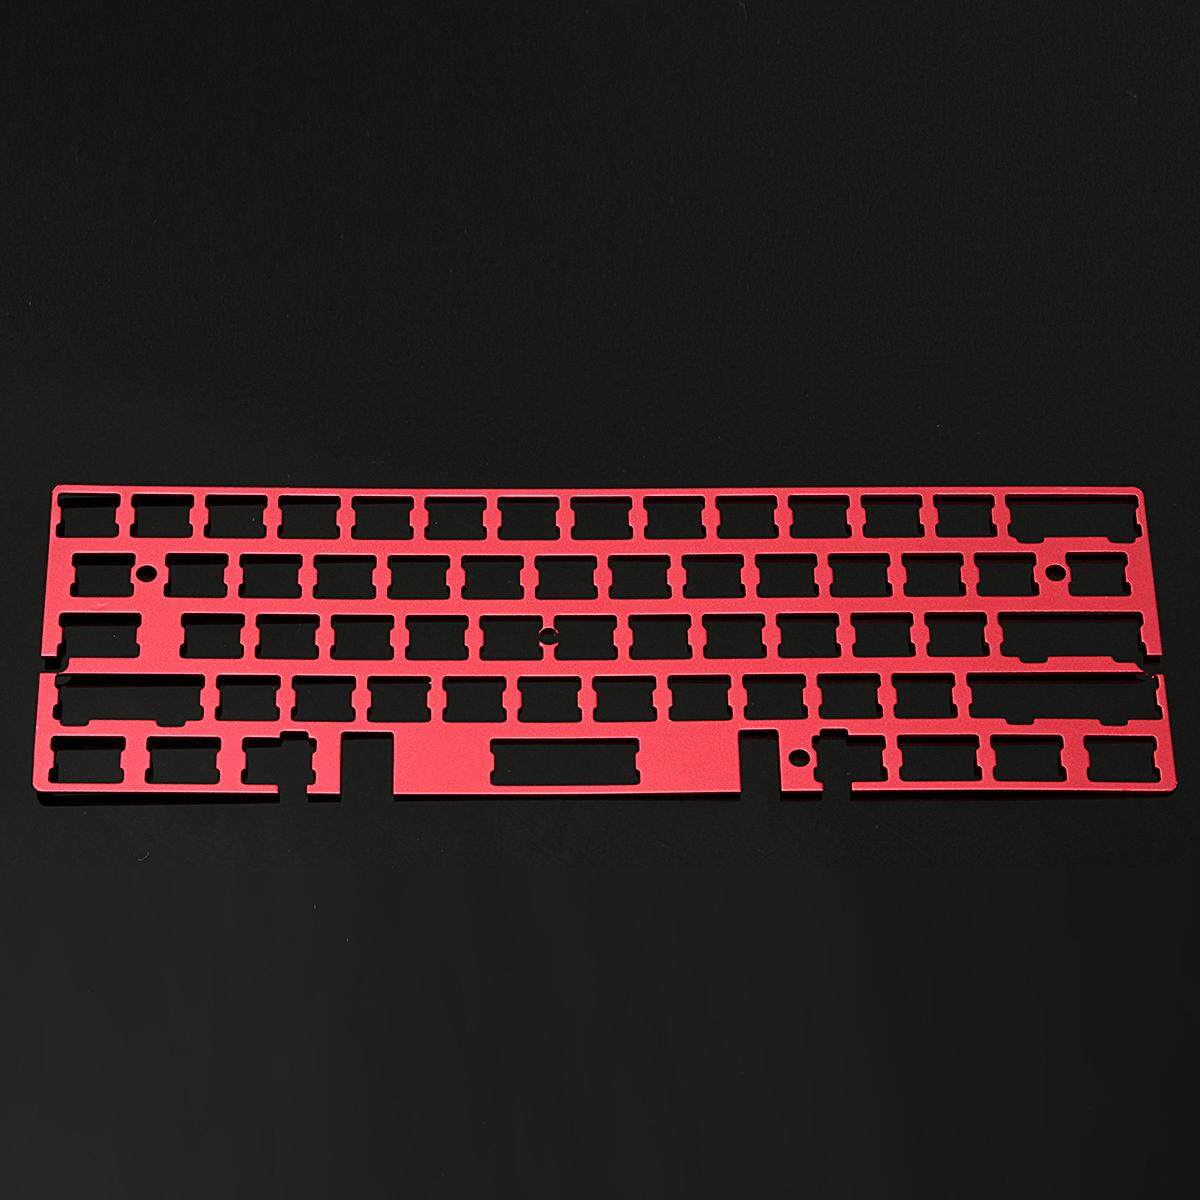 Aluminum Board Plate Universal Frame Mechanical Keyboard for GH60 11.4x3.9 Red Malaysia